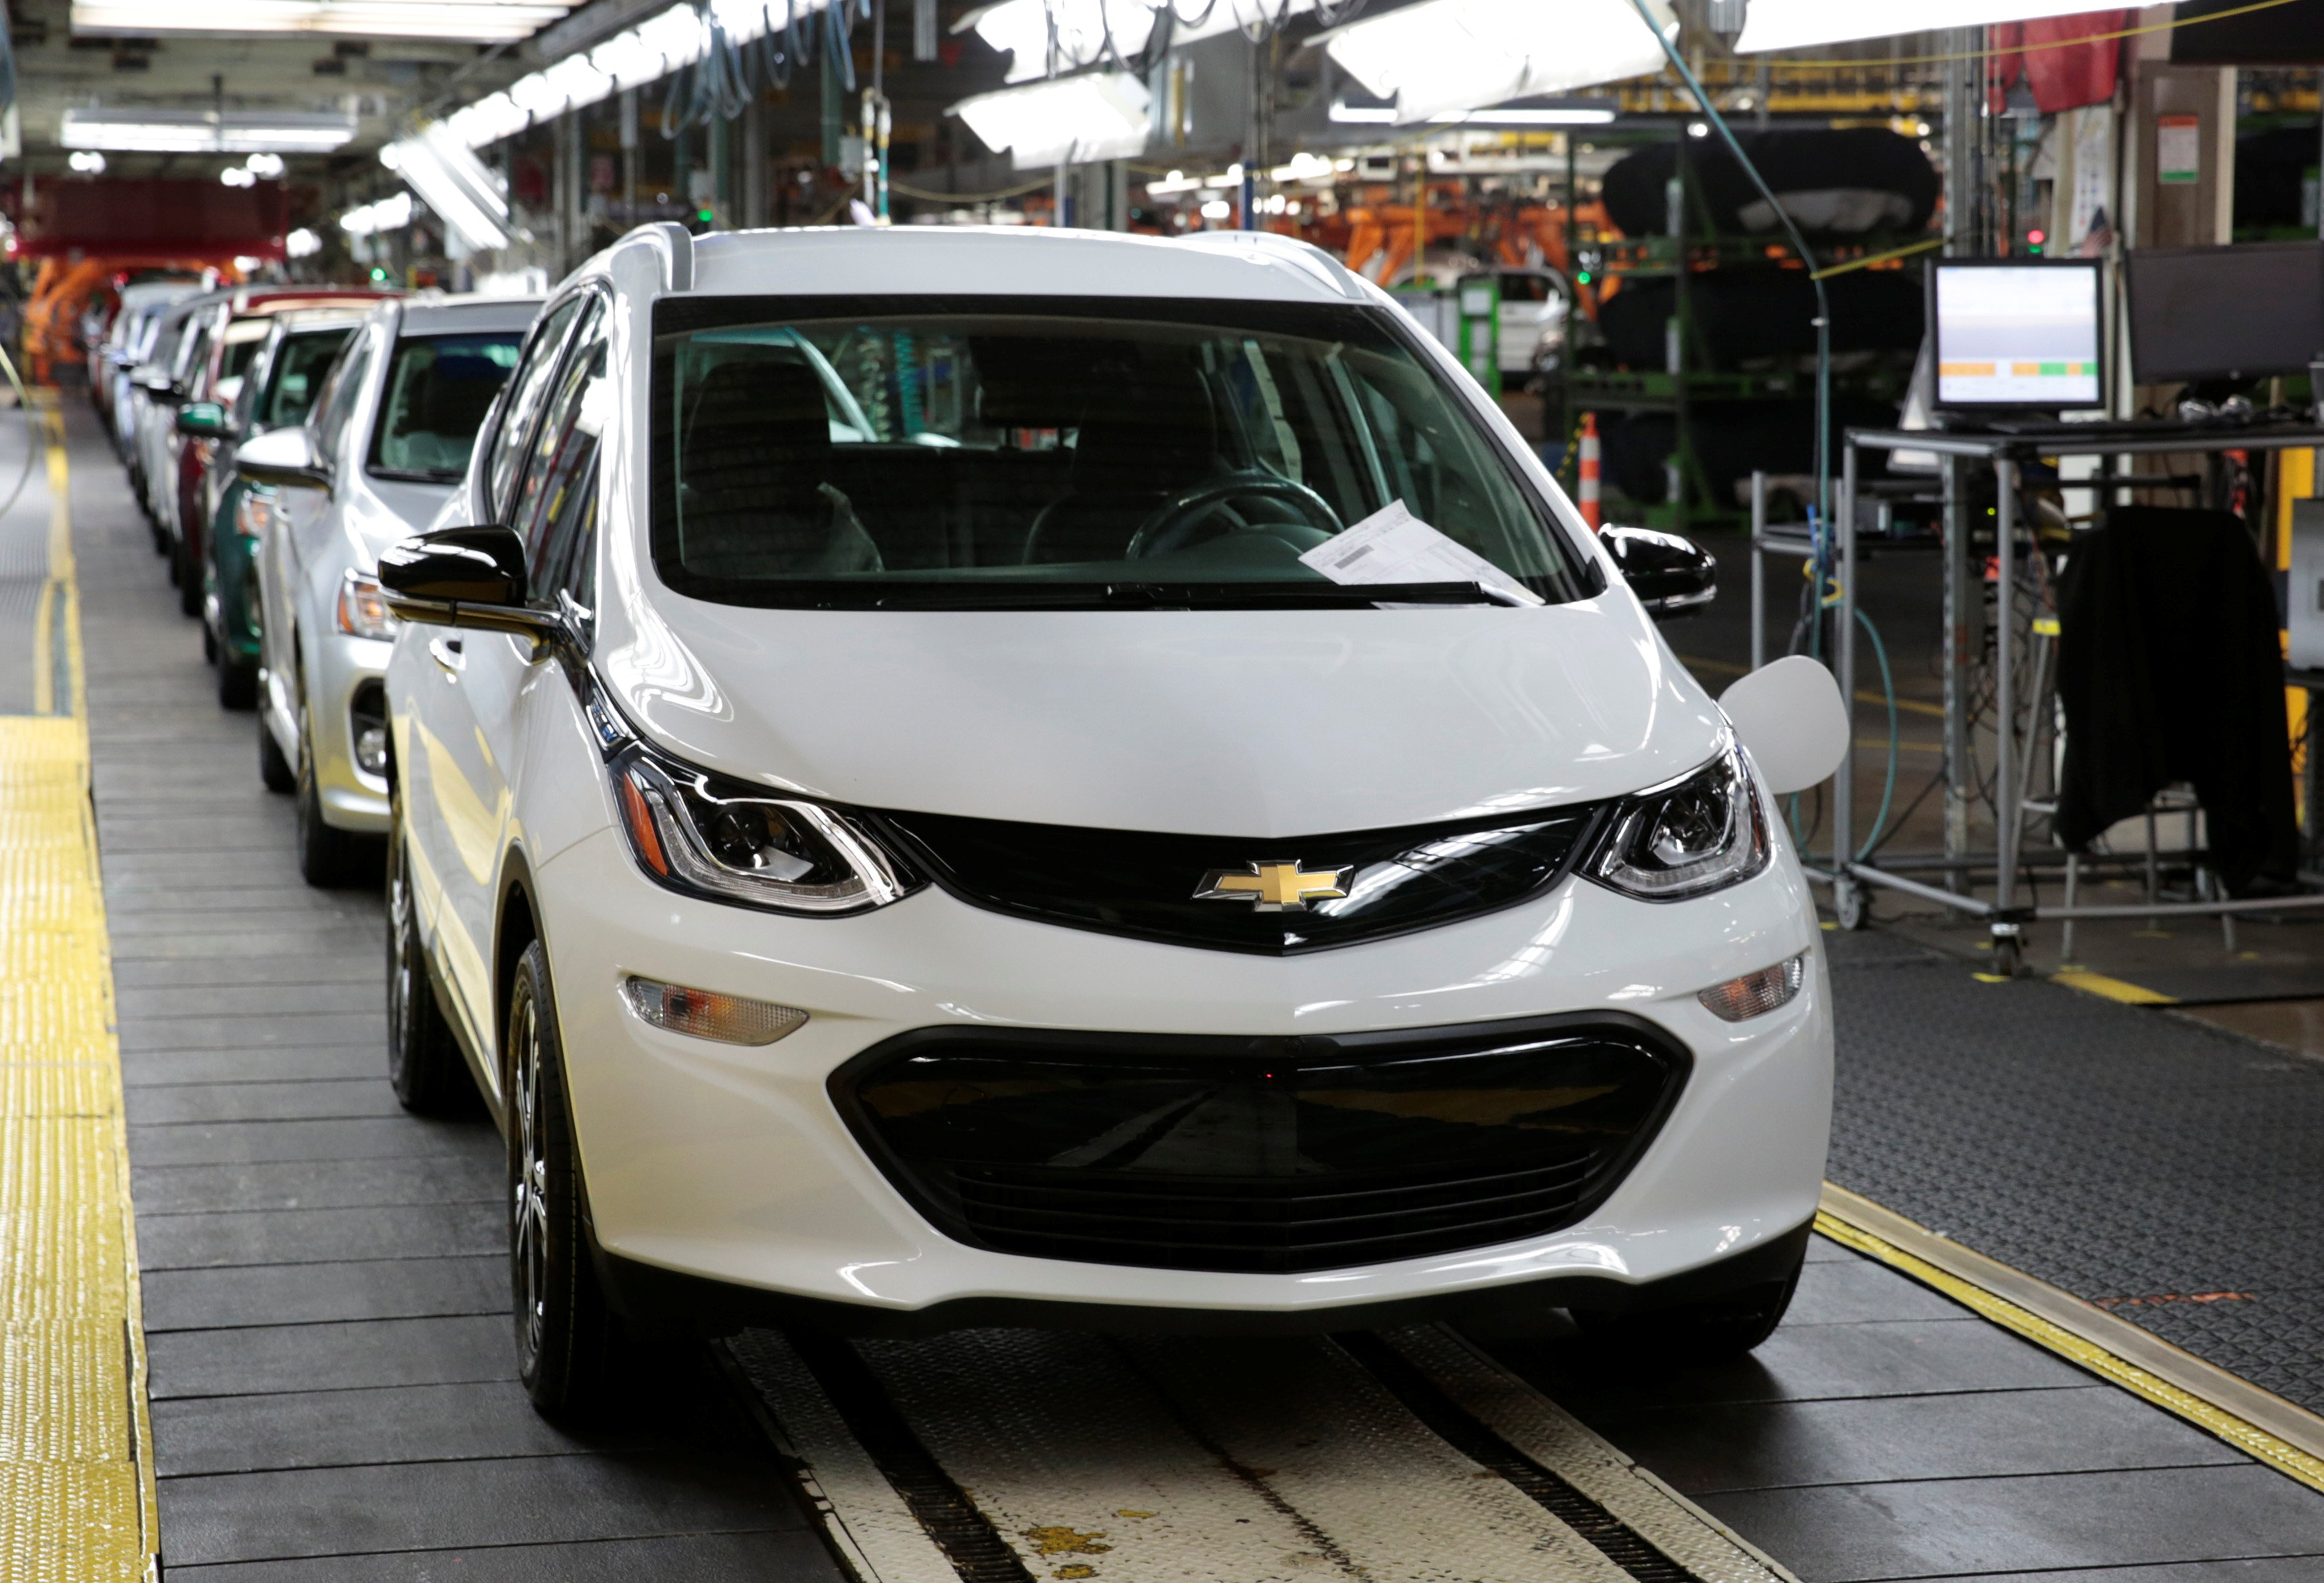 A Chevrolet Bolt EV vehicle is seen on the assembly line at General Motors Orion Assembly in Lake Orion, Michigan, U.S., March 19, 2018. Photo taken March 19, 2018. REUTERS/Rebecca Cook